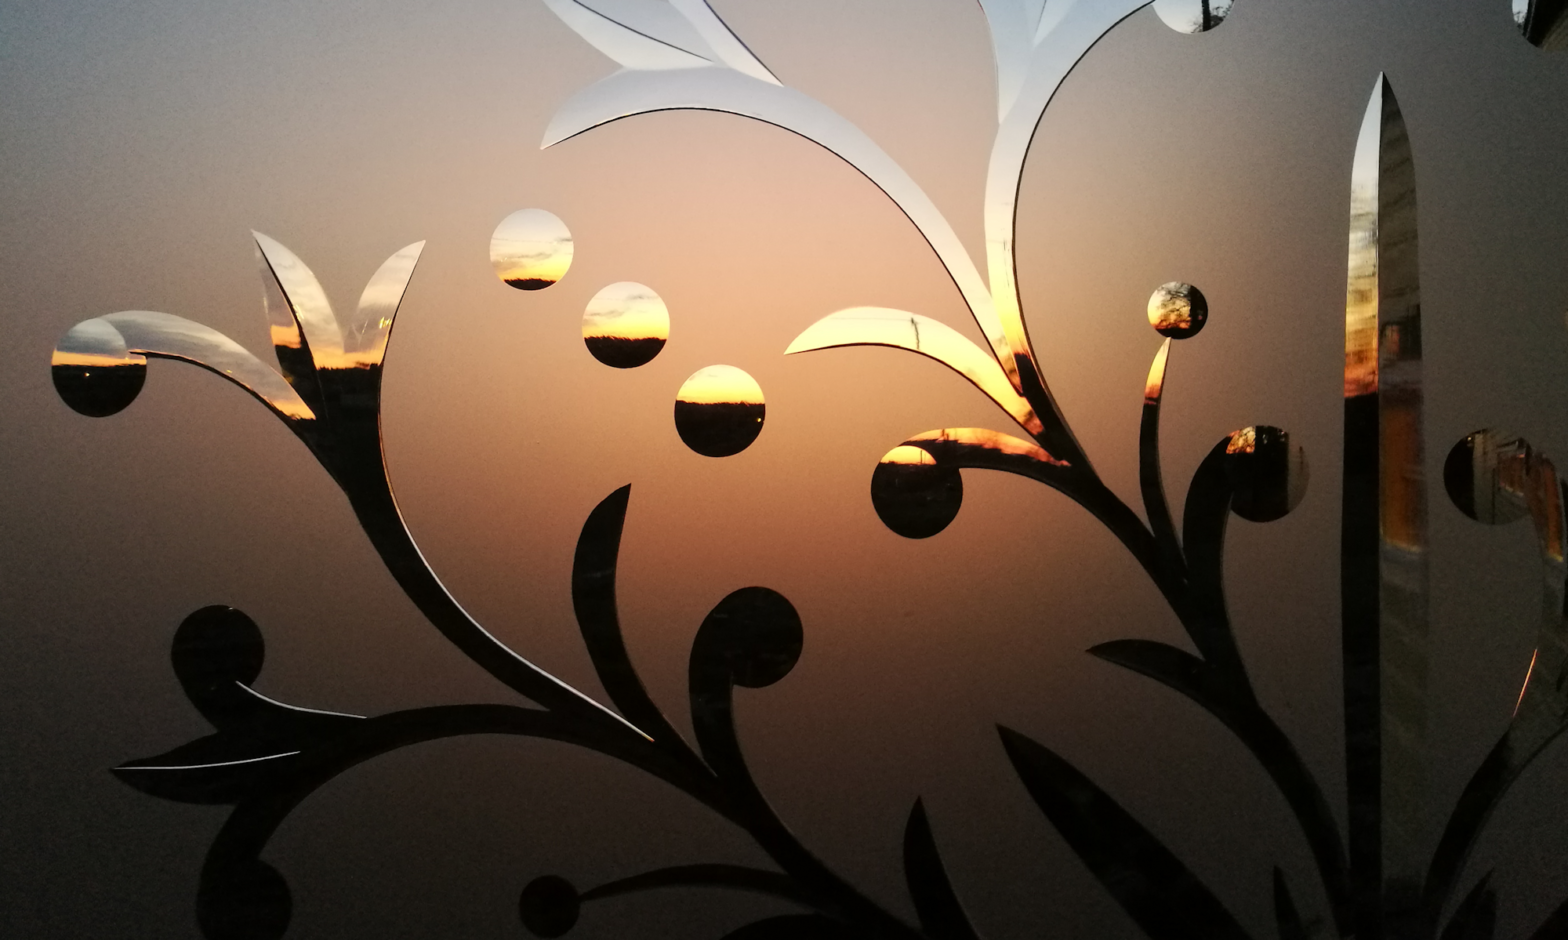 Hand-engraved and frosted glass